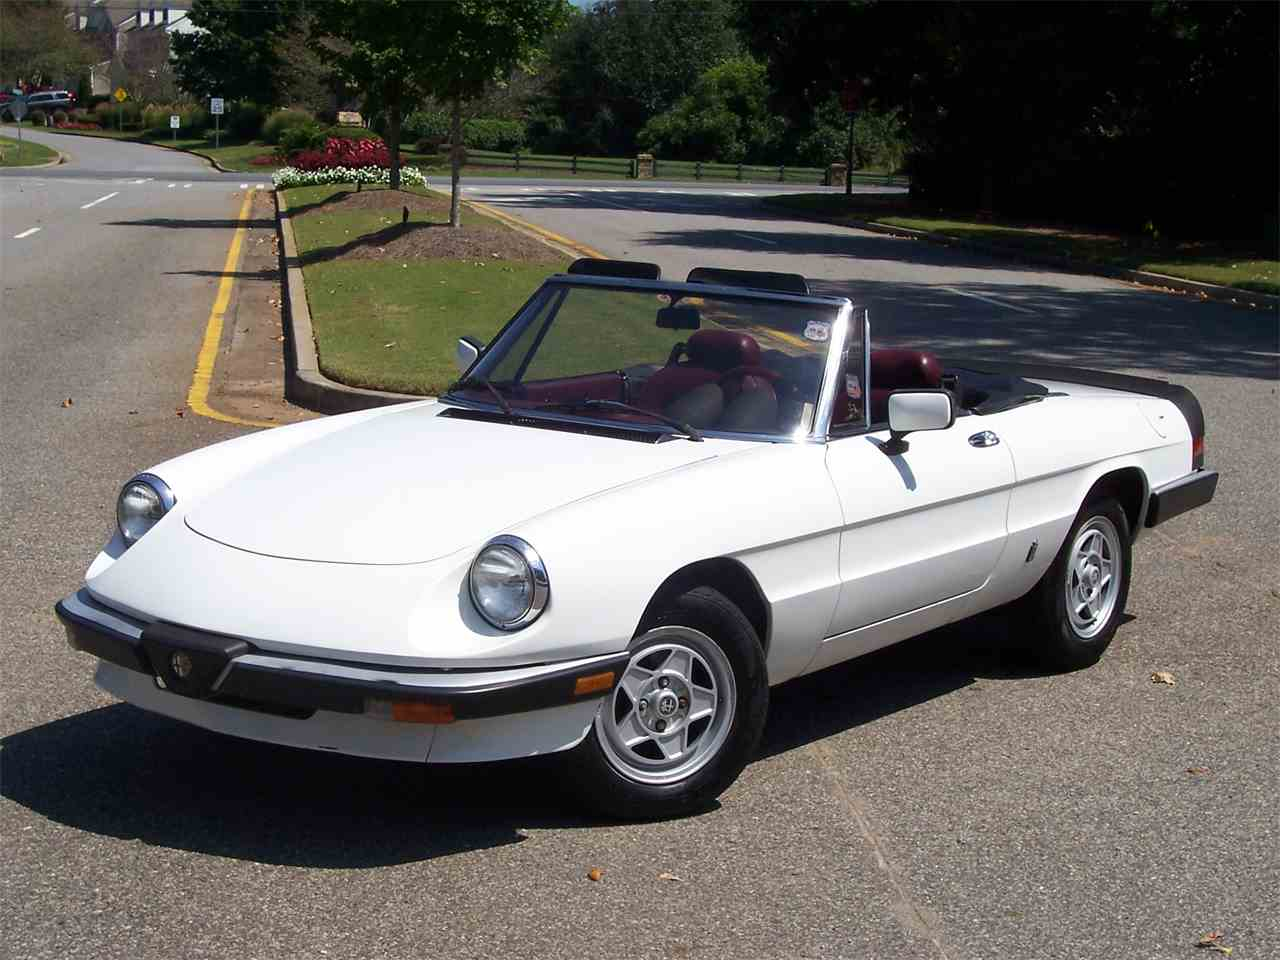 Cars For Sale Newnan Ga 2000: 1985 Alfa Romeo 2000 Spider Veloce For Sale